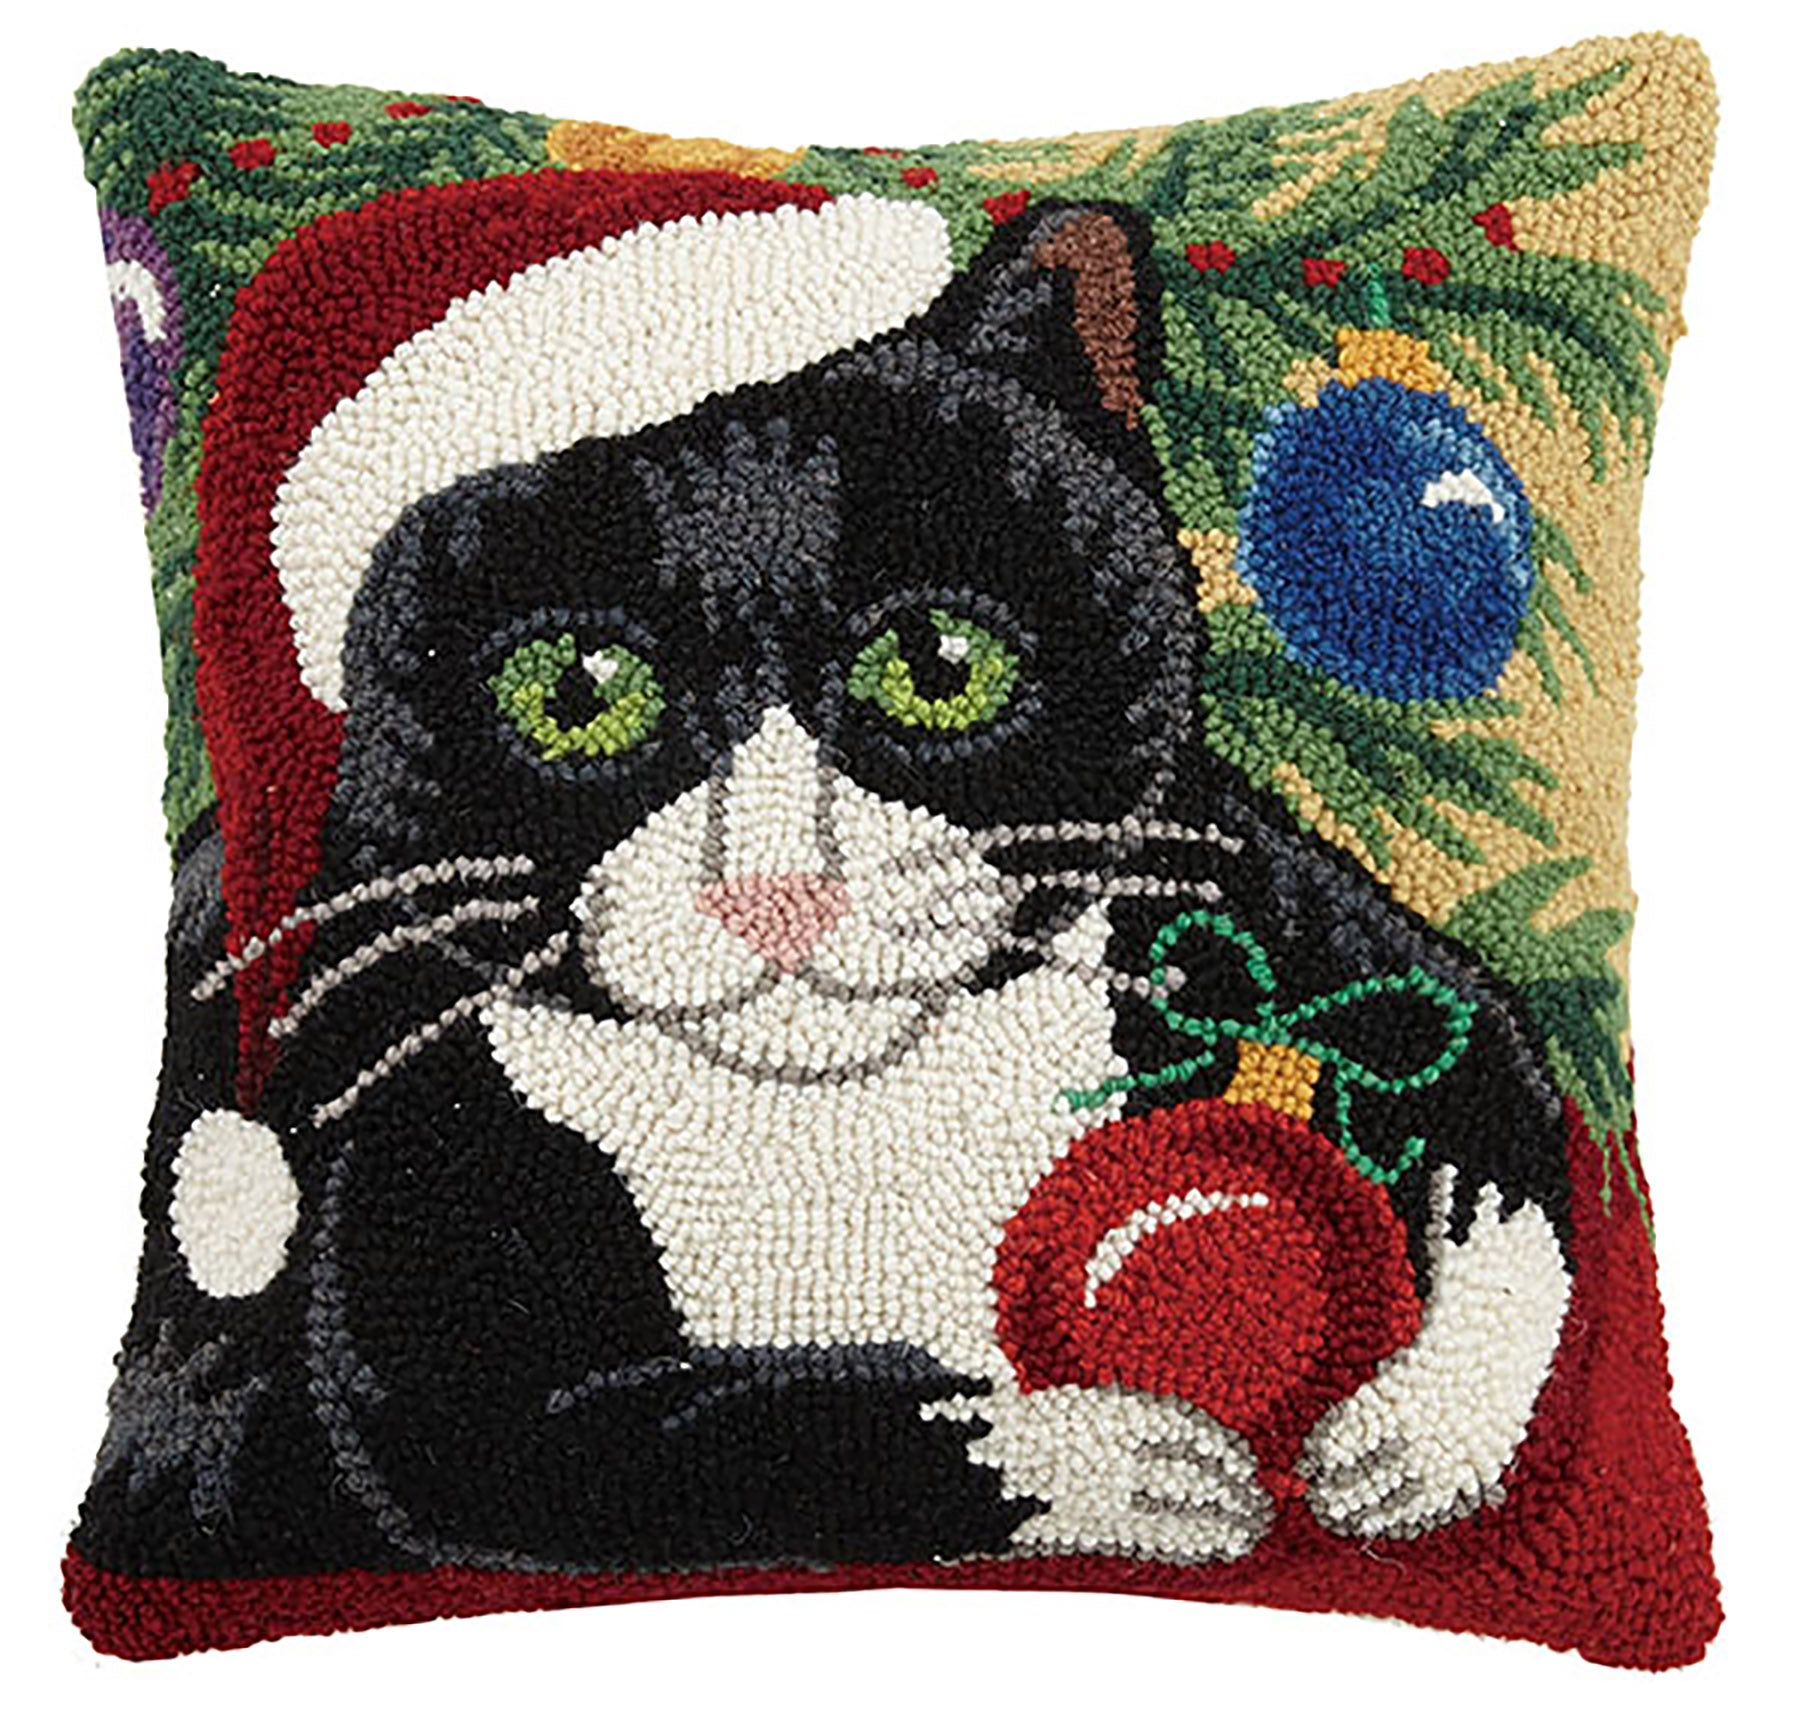 Mischievous Christmas Kitty Hooked Pillow